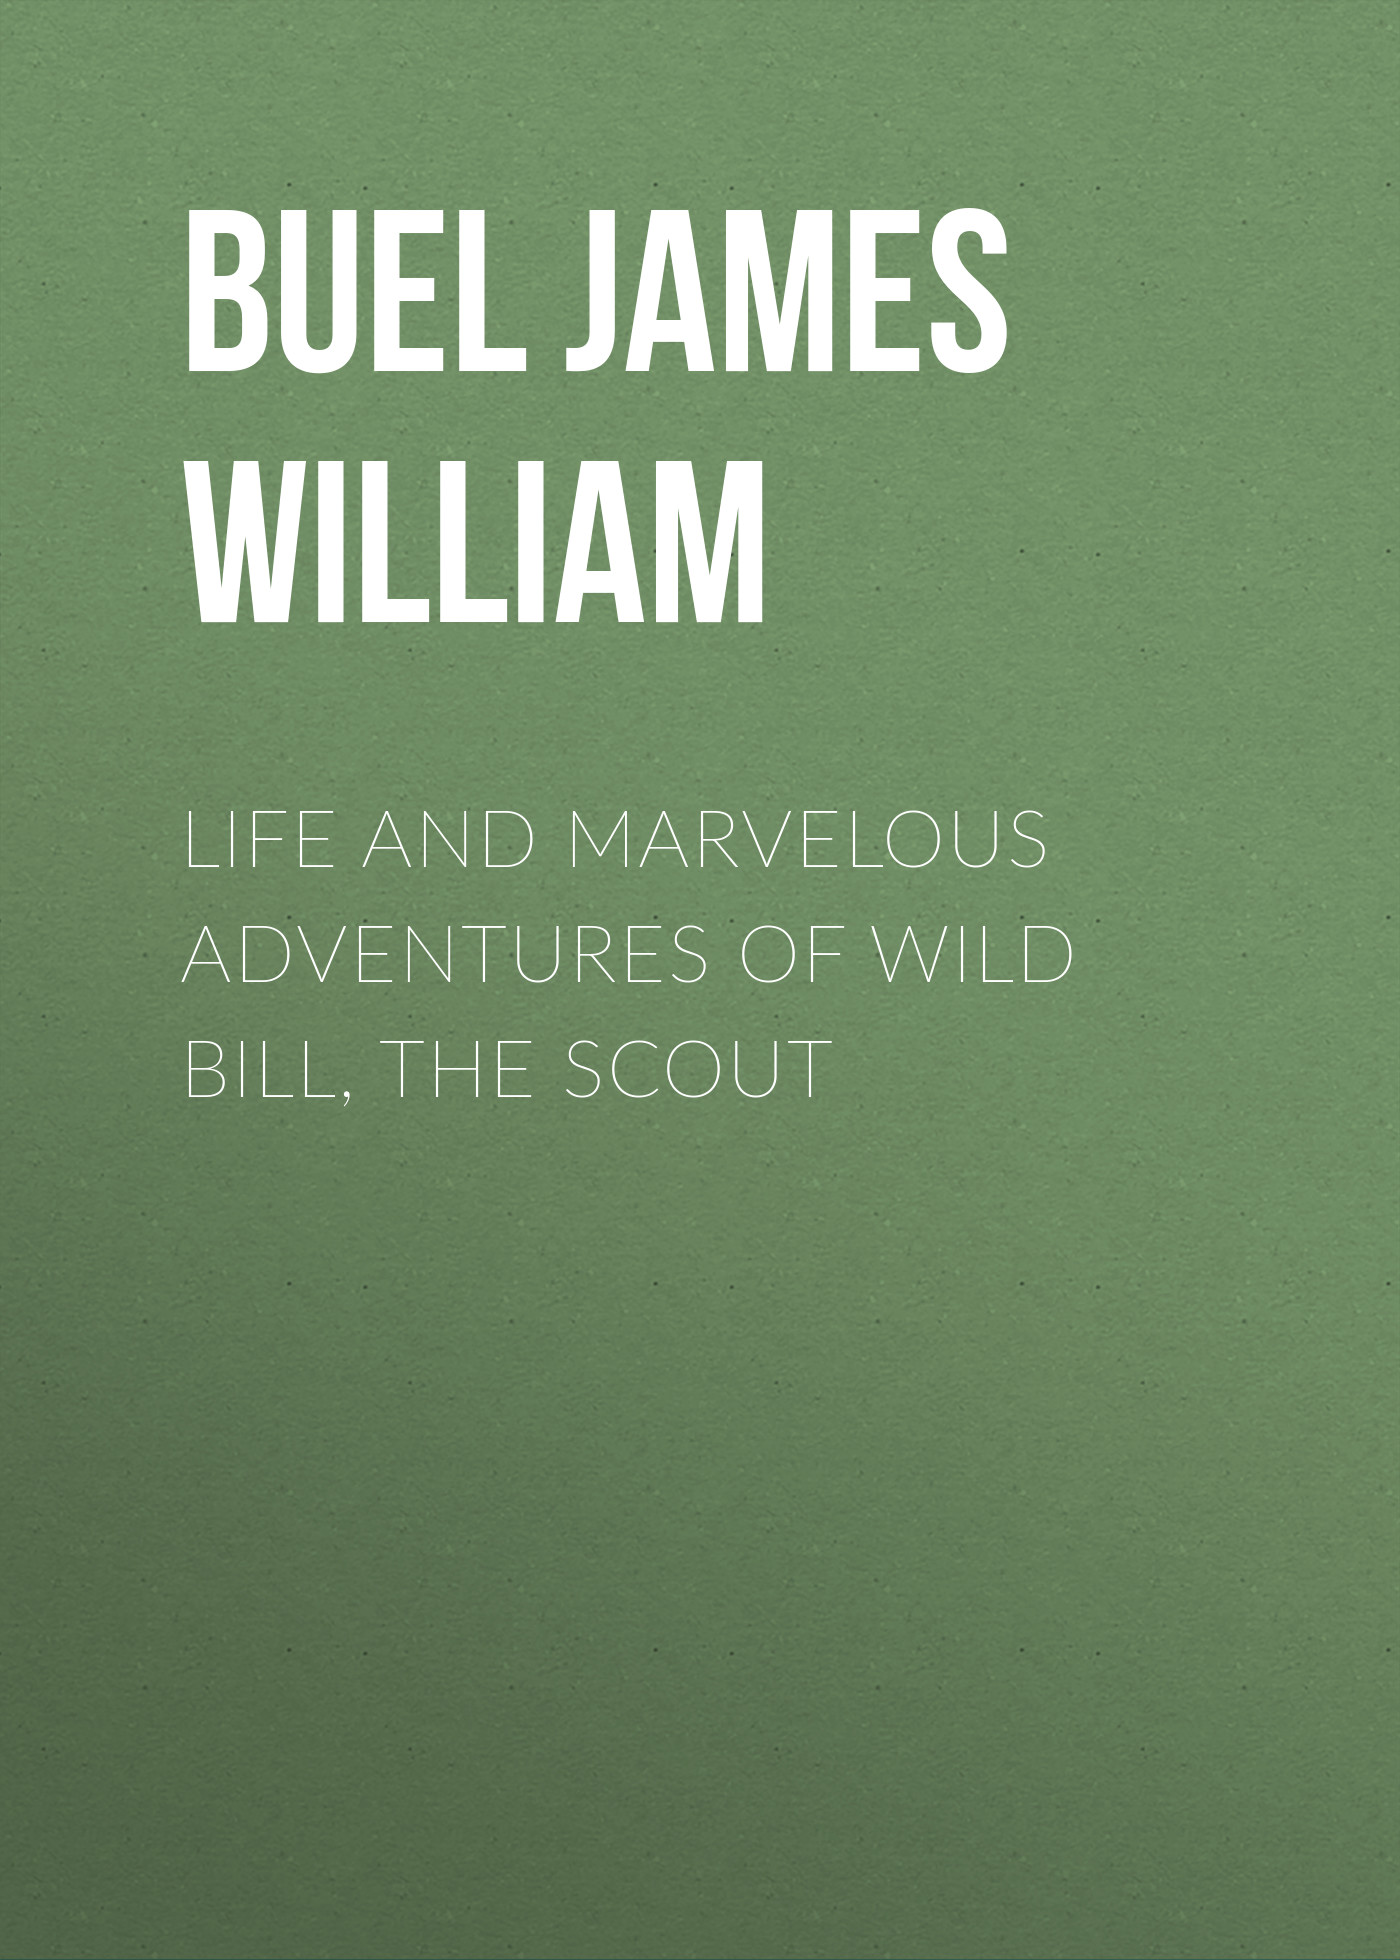 Buel James William Life and marvelous adventures of Wild Bill, the Scout william james the letters of william james vol 2